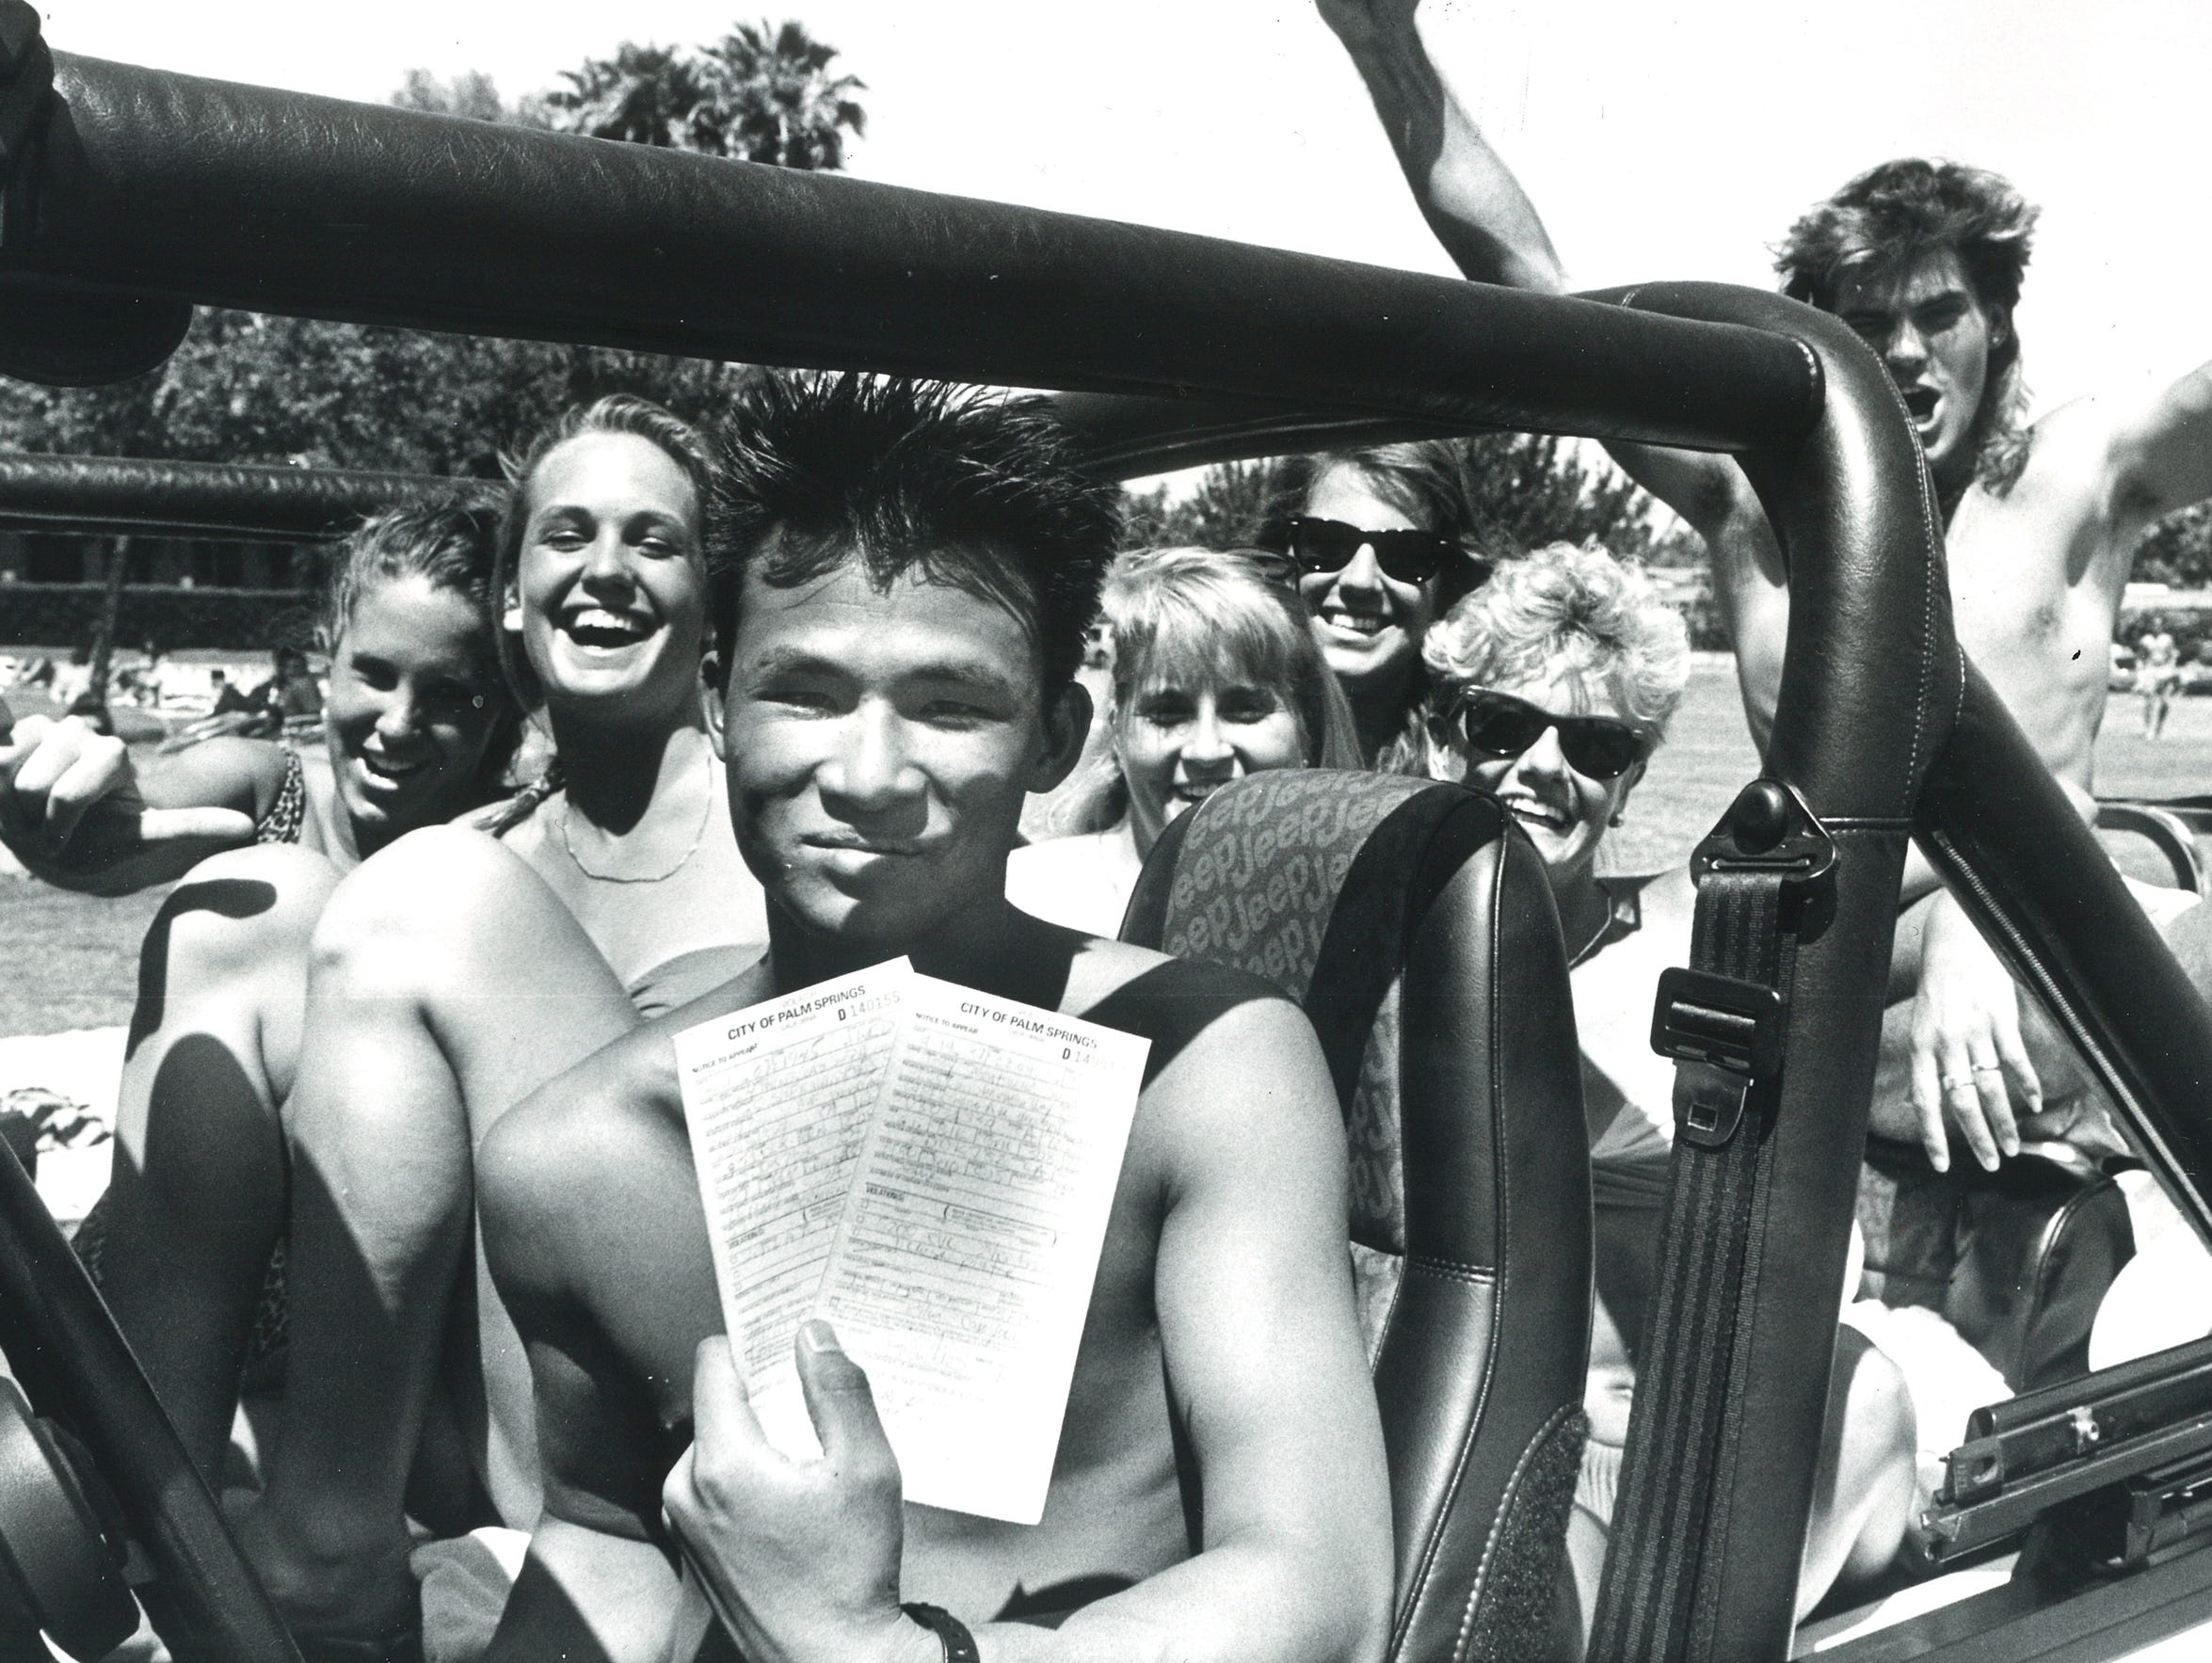 A spring breaker shows off a citation he received from